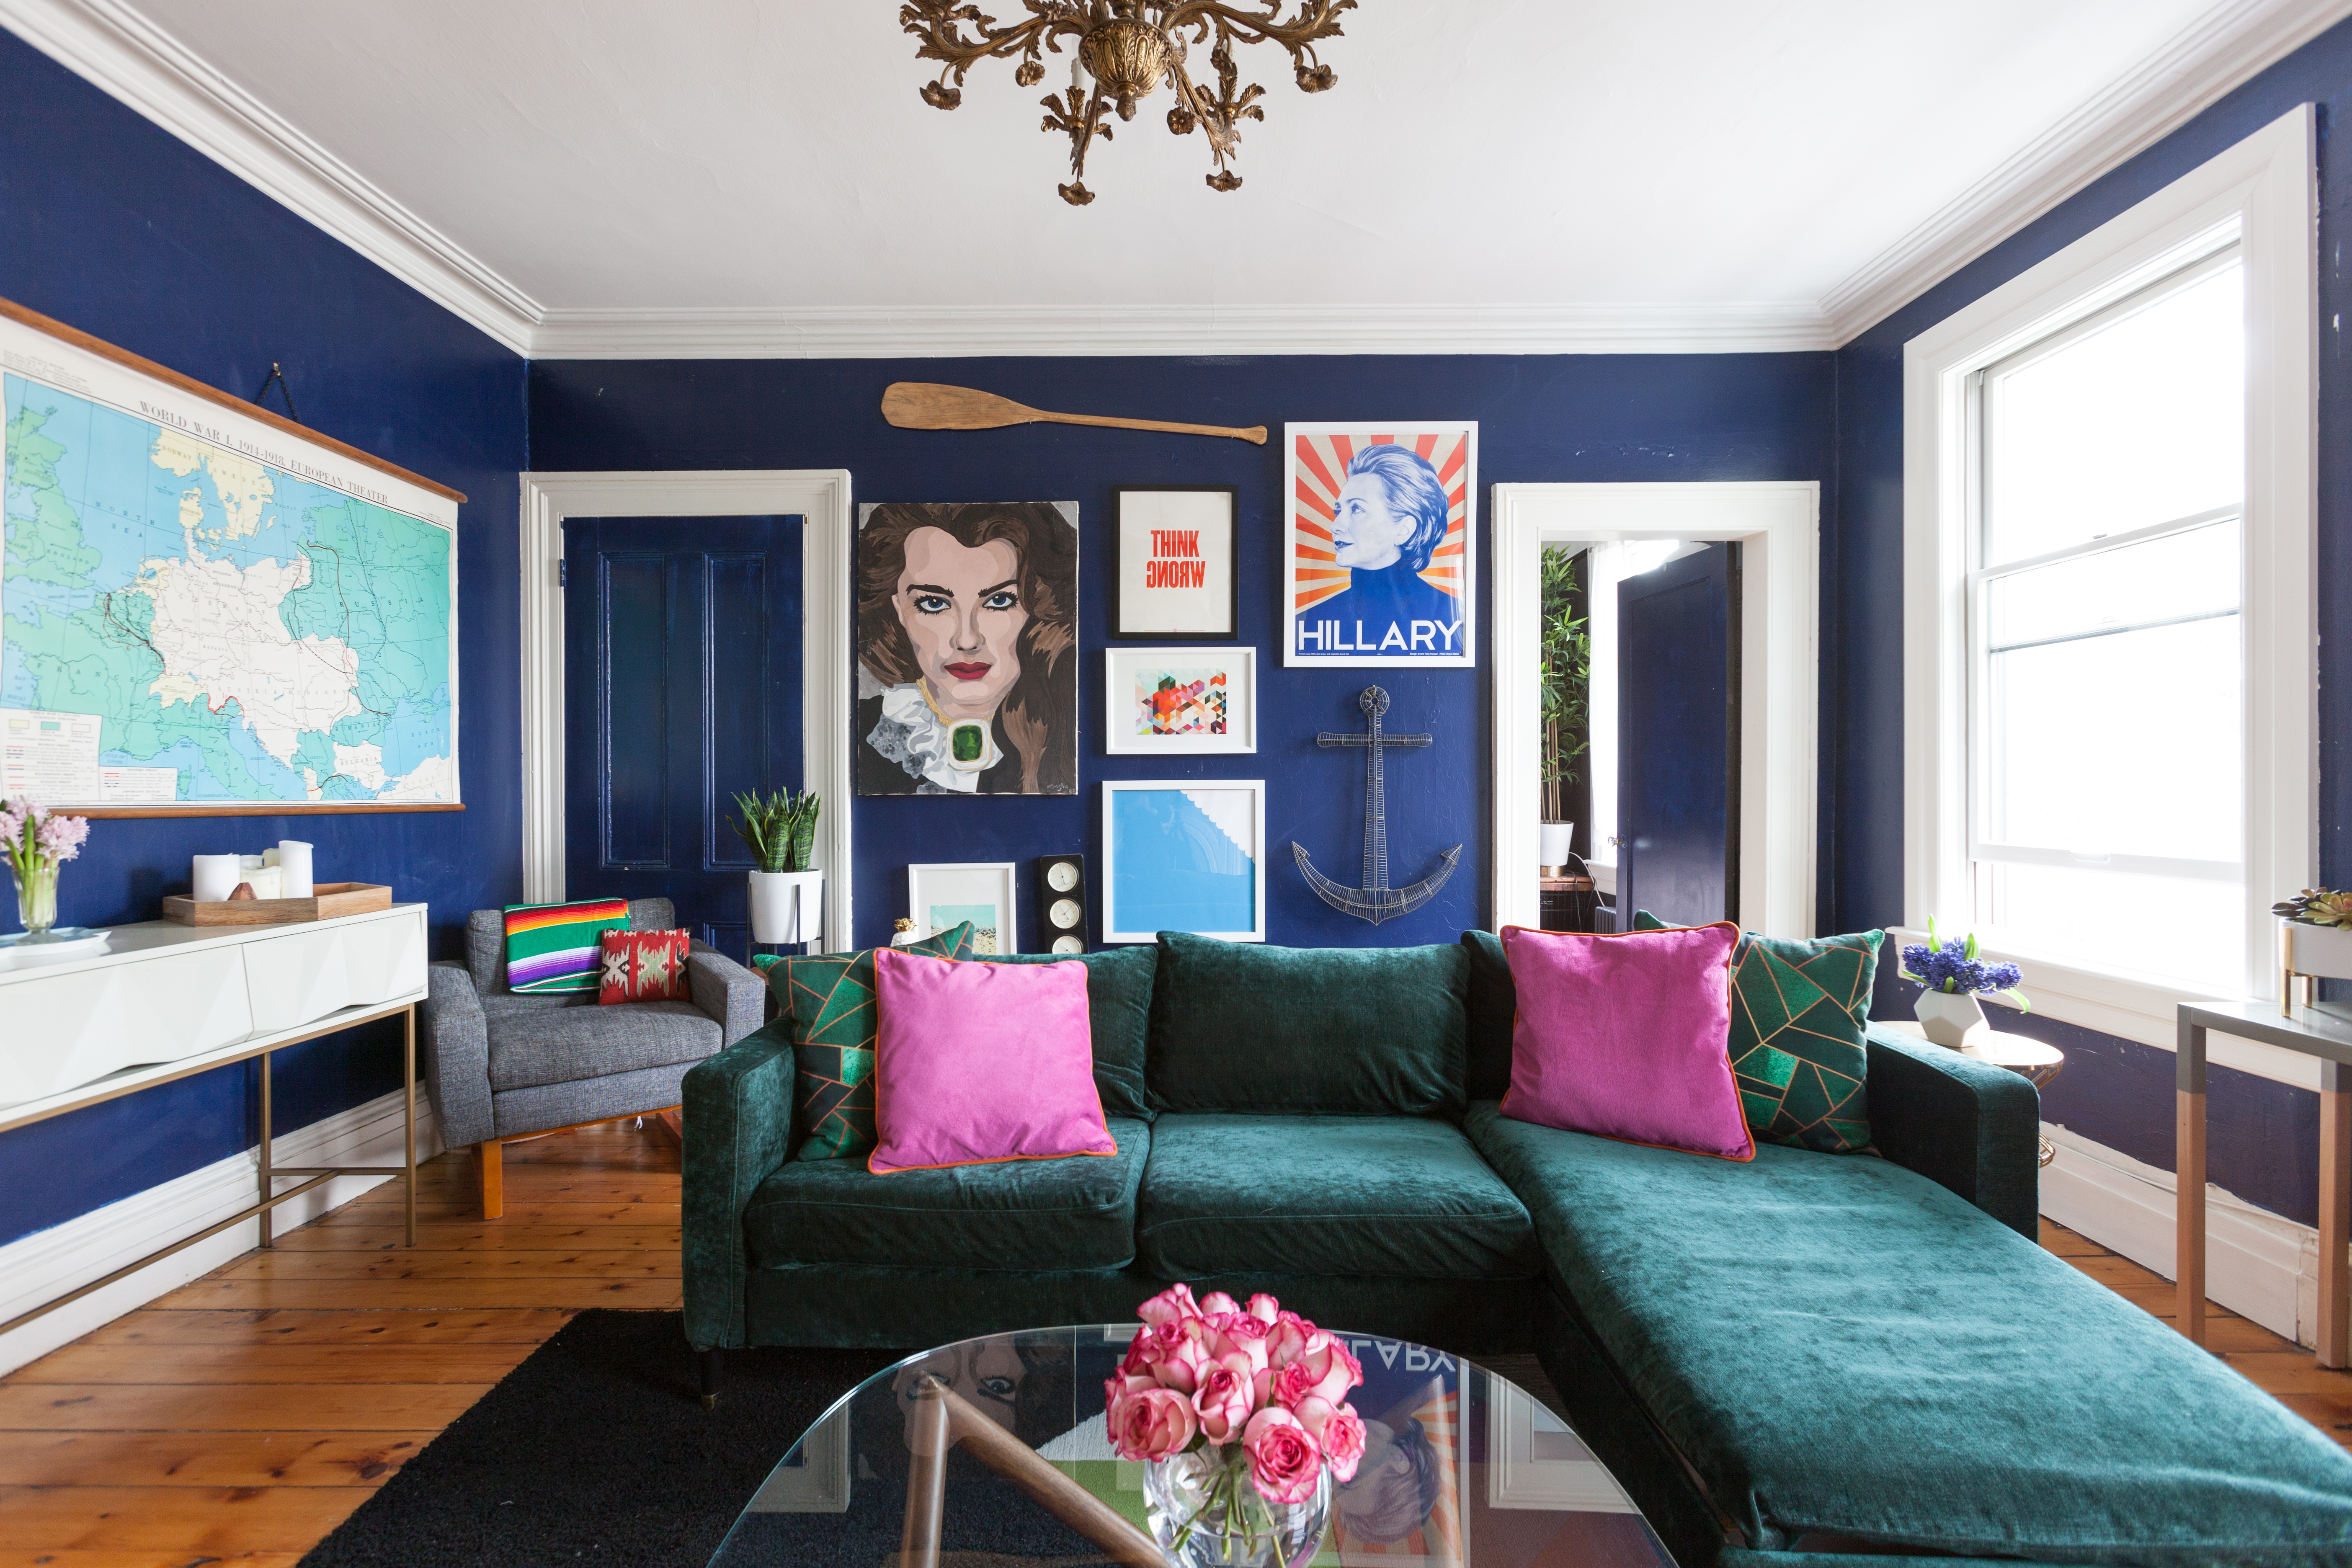 The Best Blue Living Room Paint Colors, According to Real Estate Agents